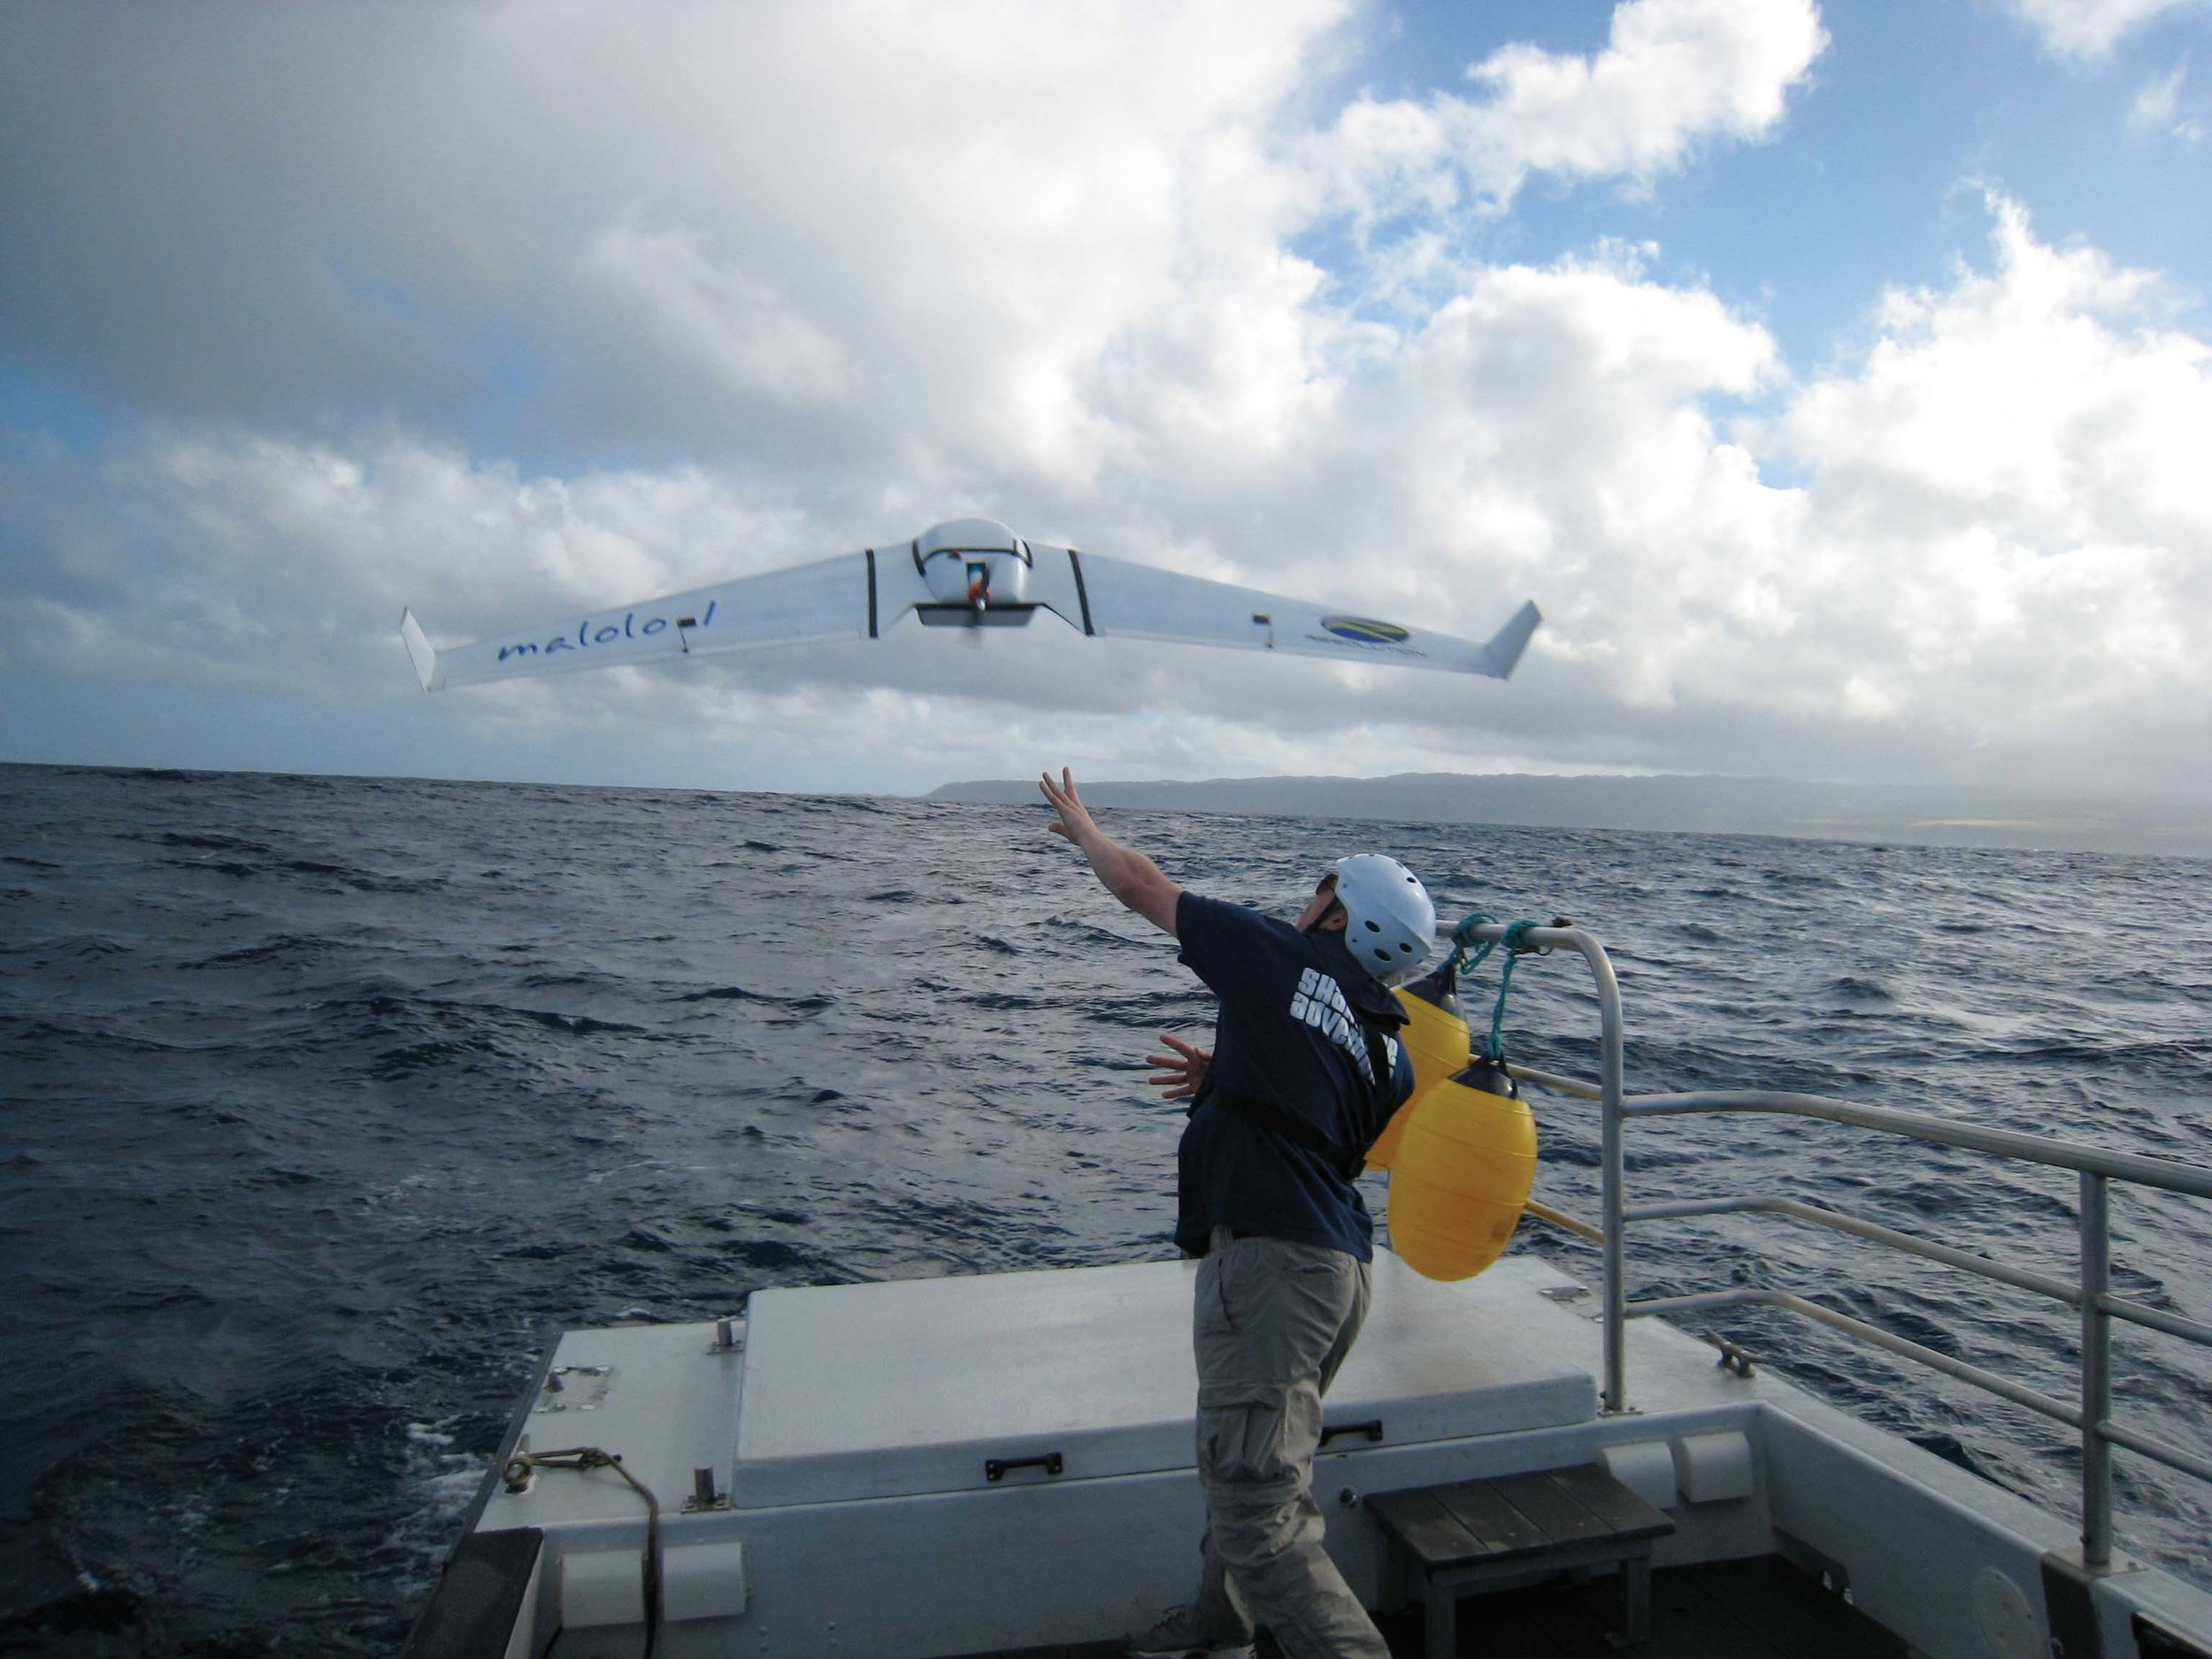 A prototype for an Unmanned Aircraft System, meant to aid in the detection of marine debris in the open ocean, is tested aboard a National Oceanic and Atmospheric Administration vessel. © NOAA